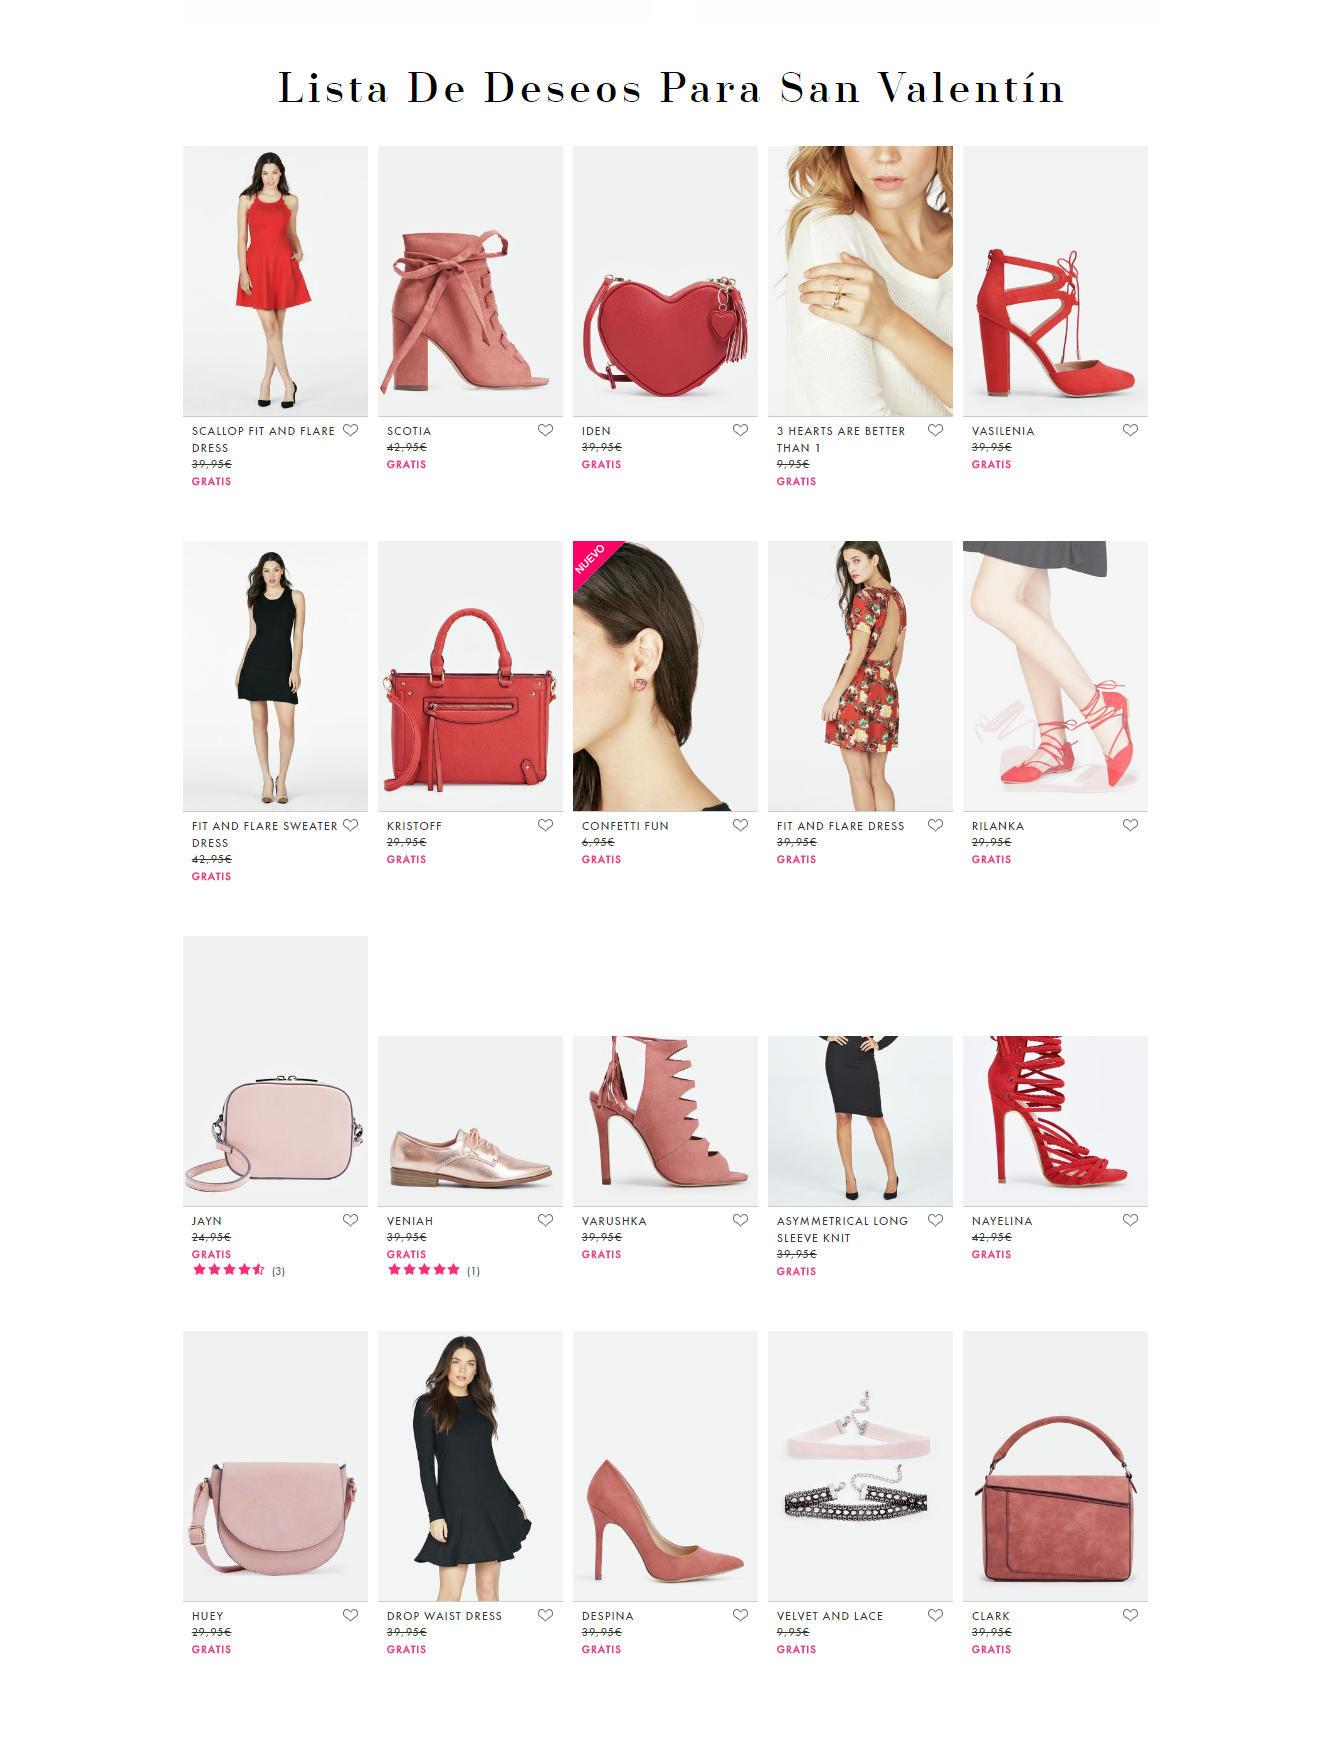 acciones marketing san valentin - lista deseos JustFab